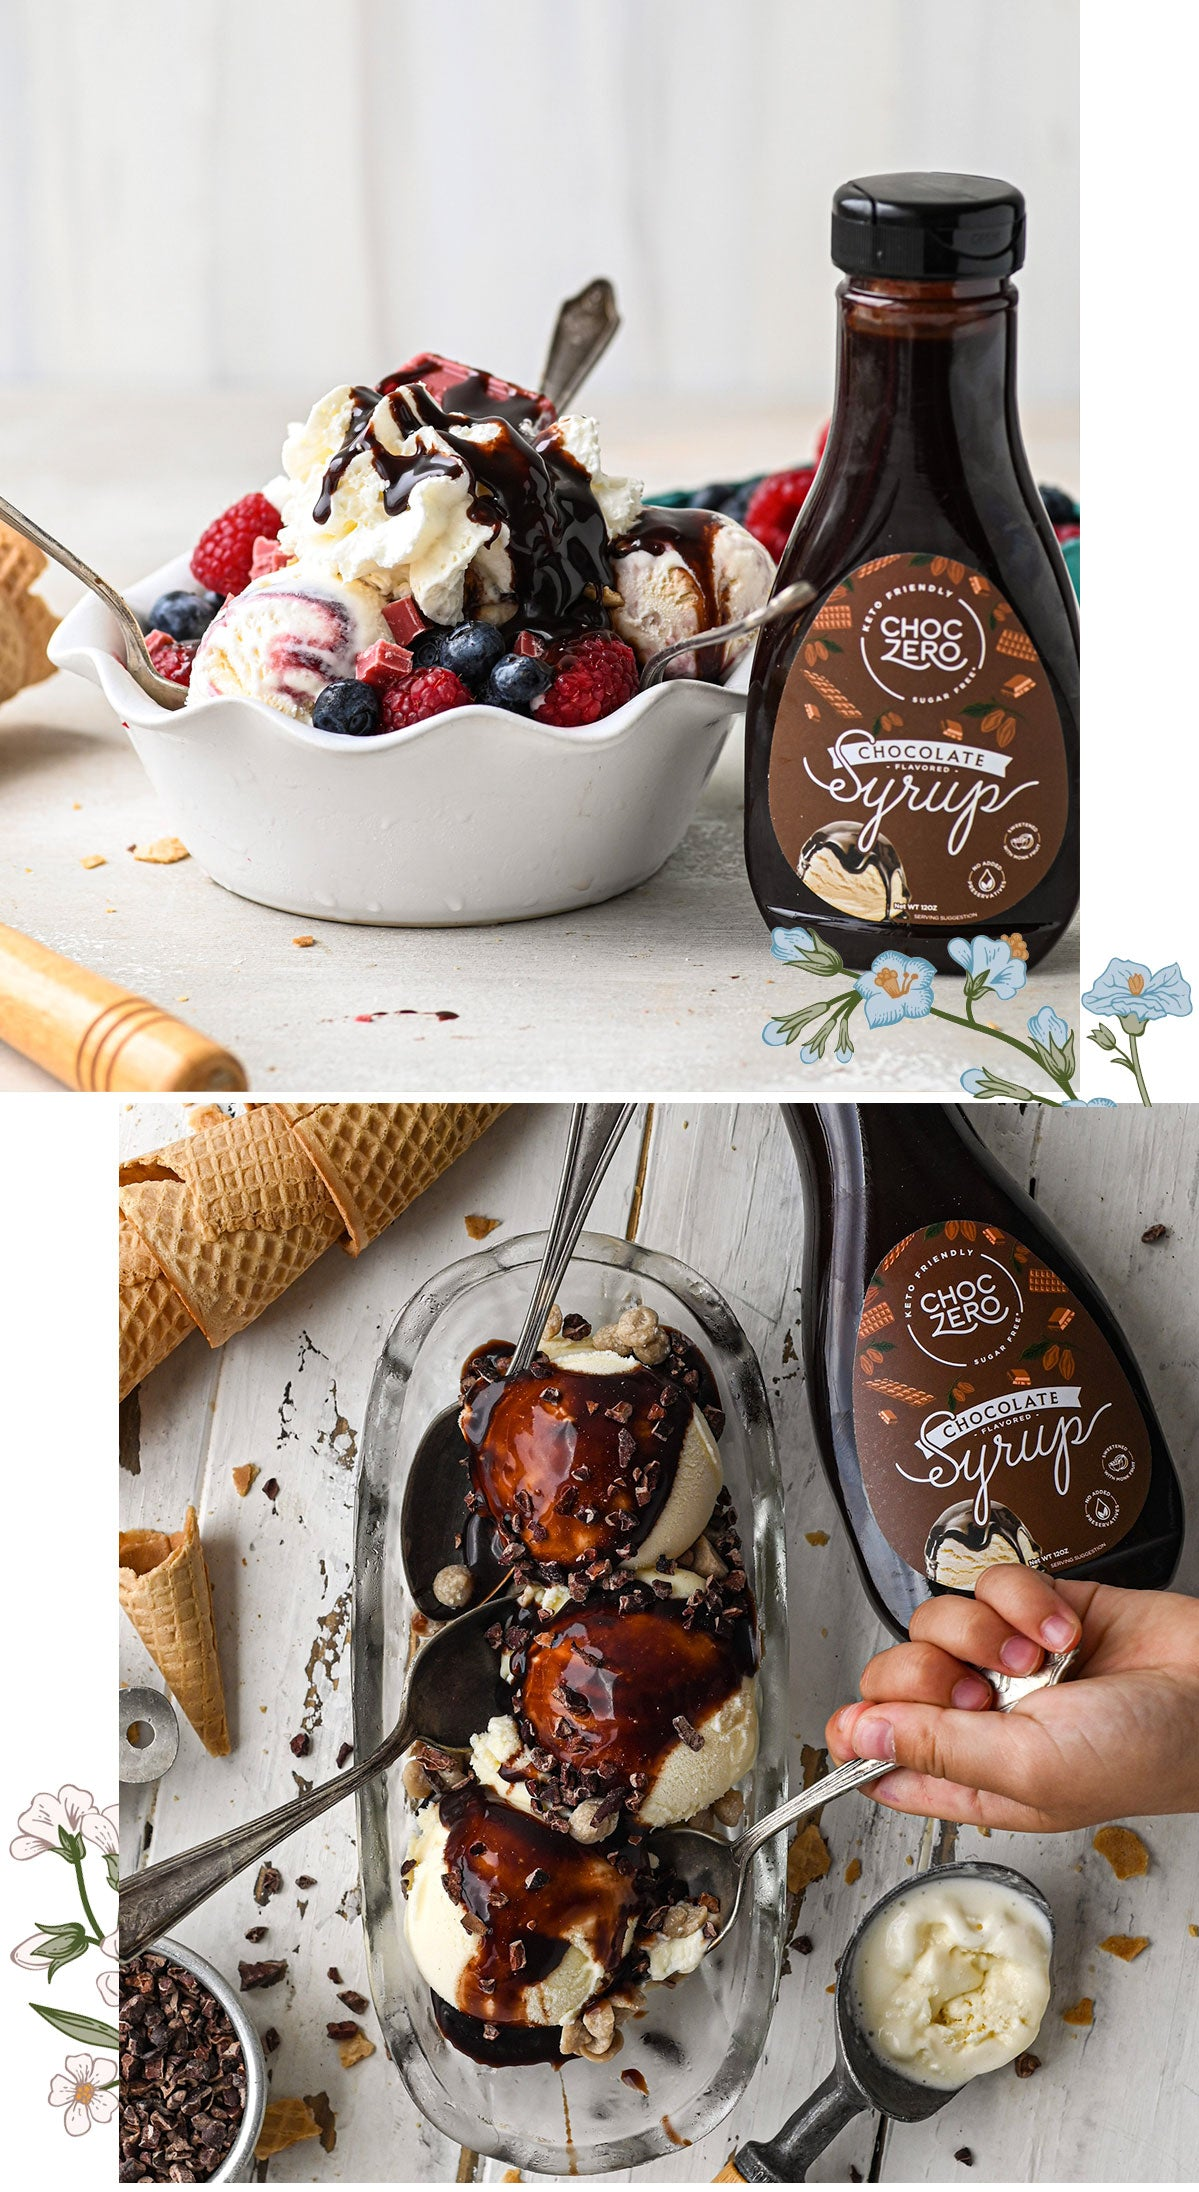 Ice Cream Lover's Bundle - Sugar Free Caramel and Chocolate Syrup 2-Pack Nutrition Facts